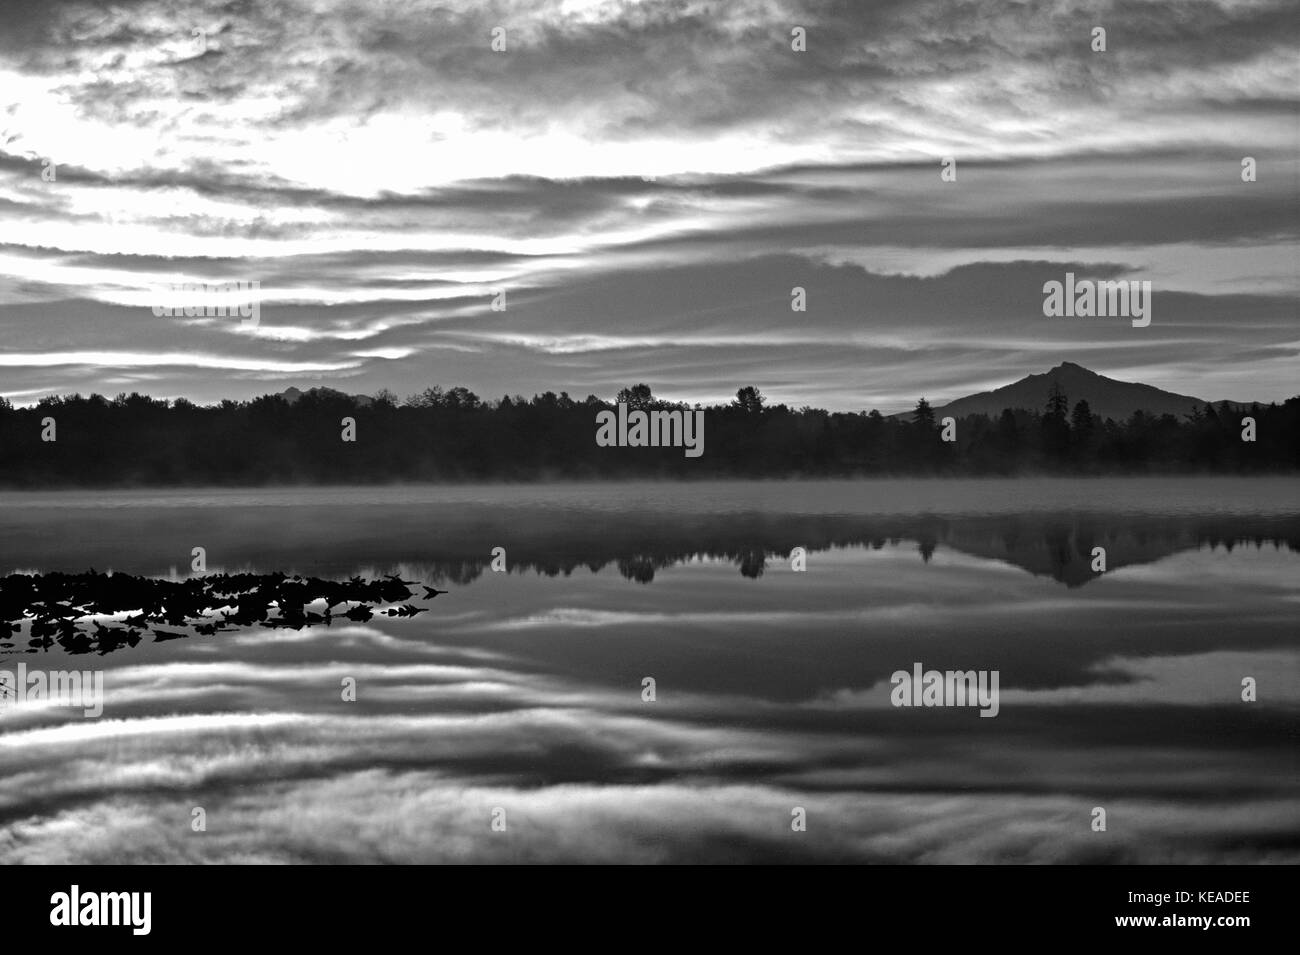 Dramatic sunrise over Lake Cassidy with Mount Pilchuck reflecting in calm lake early morning light, Snohomish County, - Stock Image